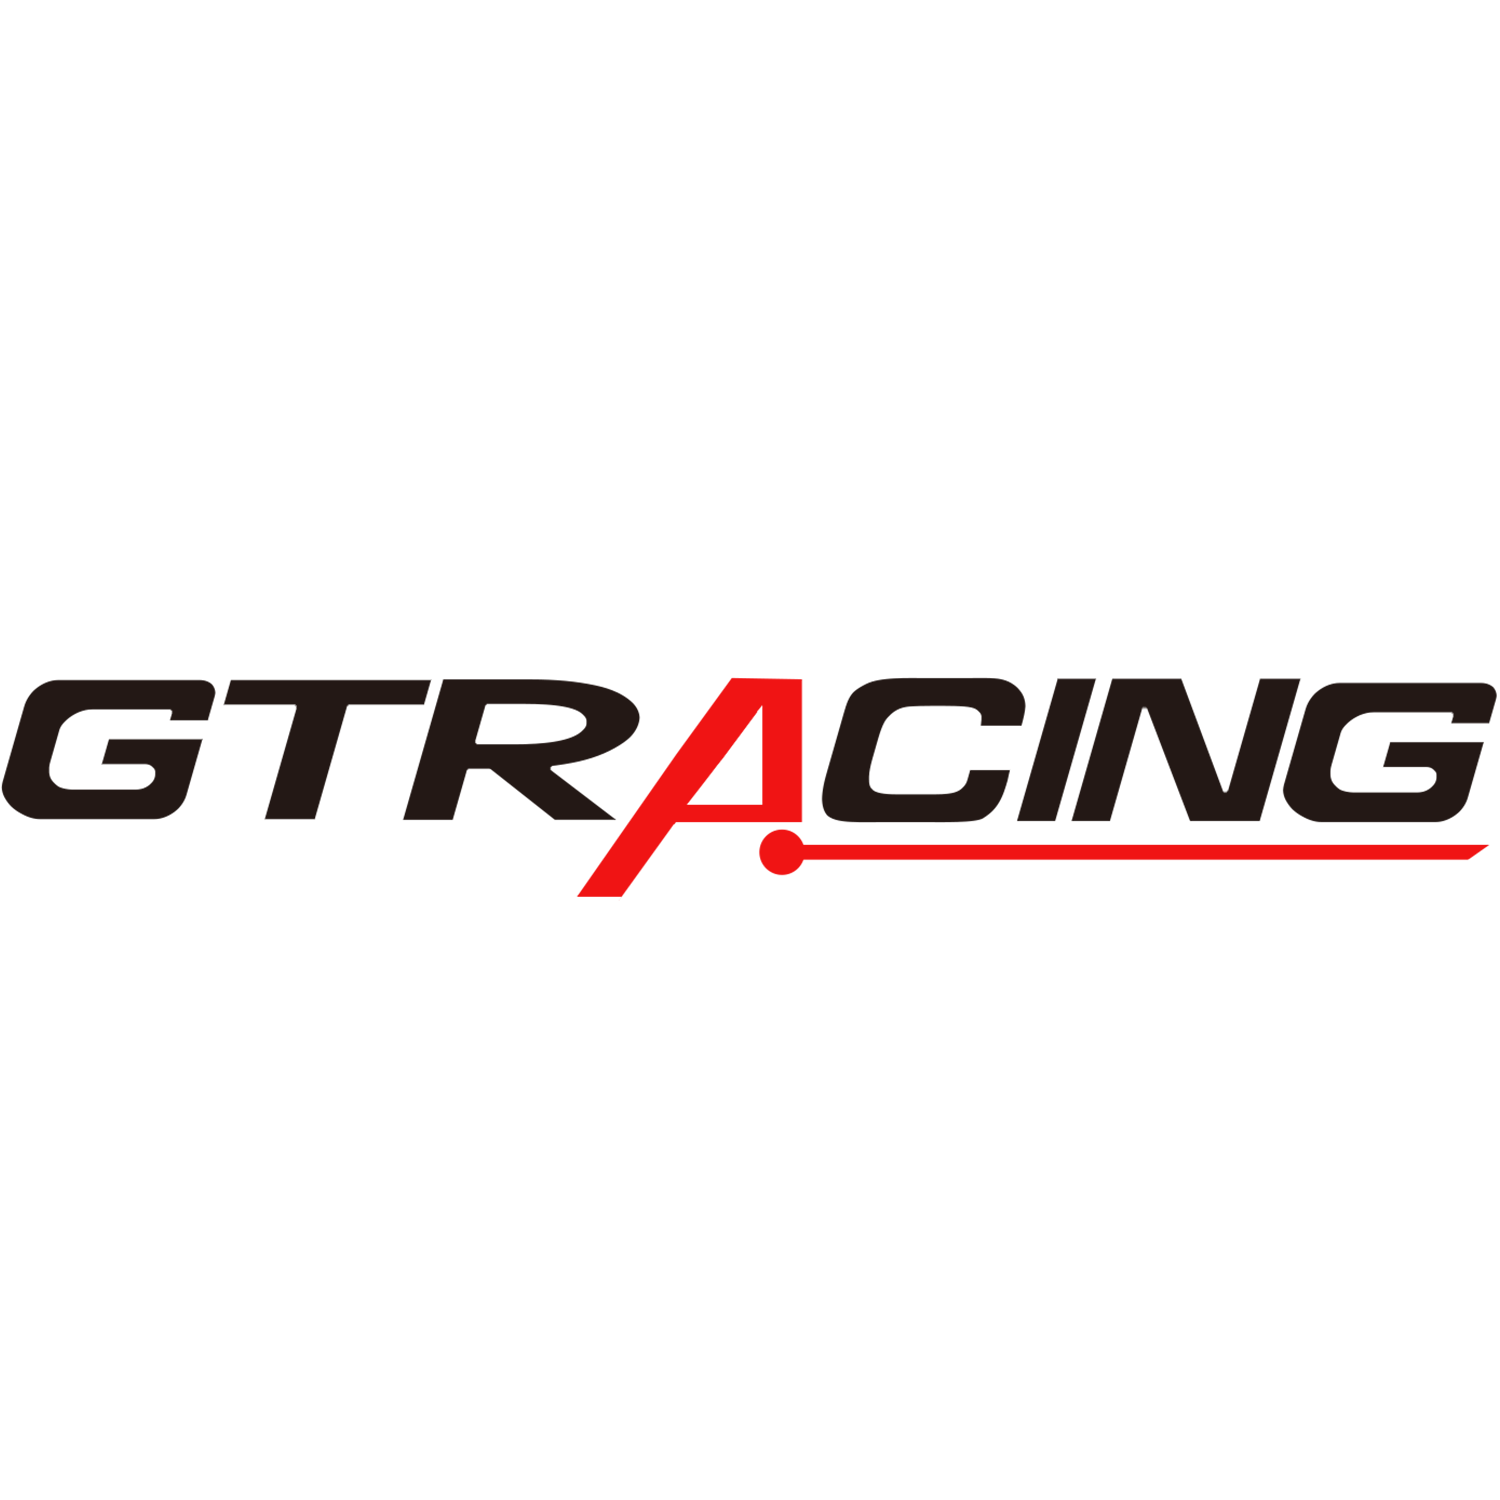 GTRACING Coupons